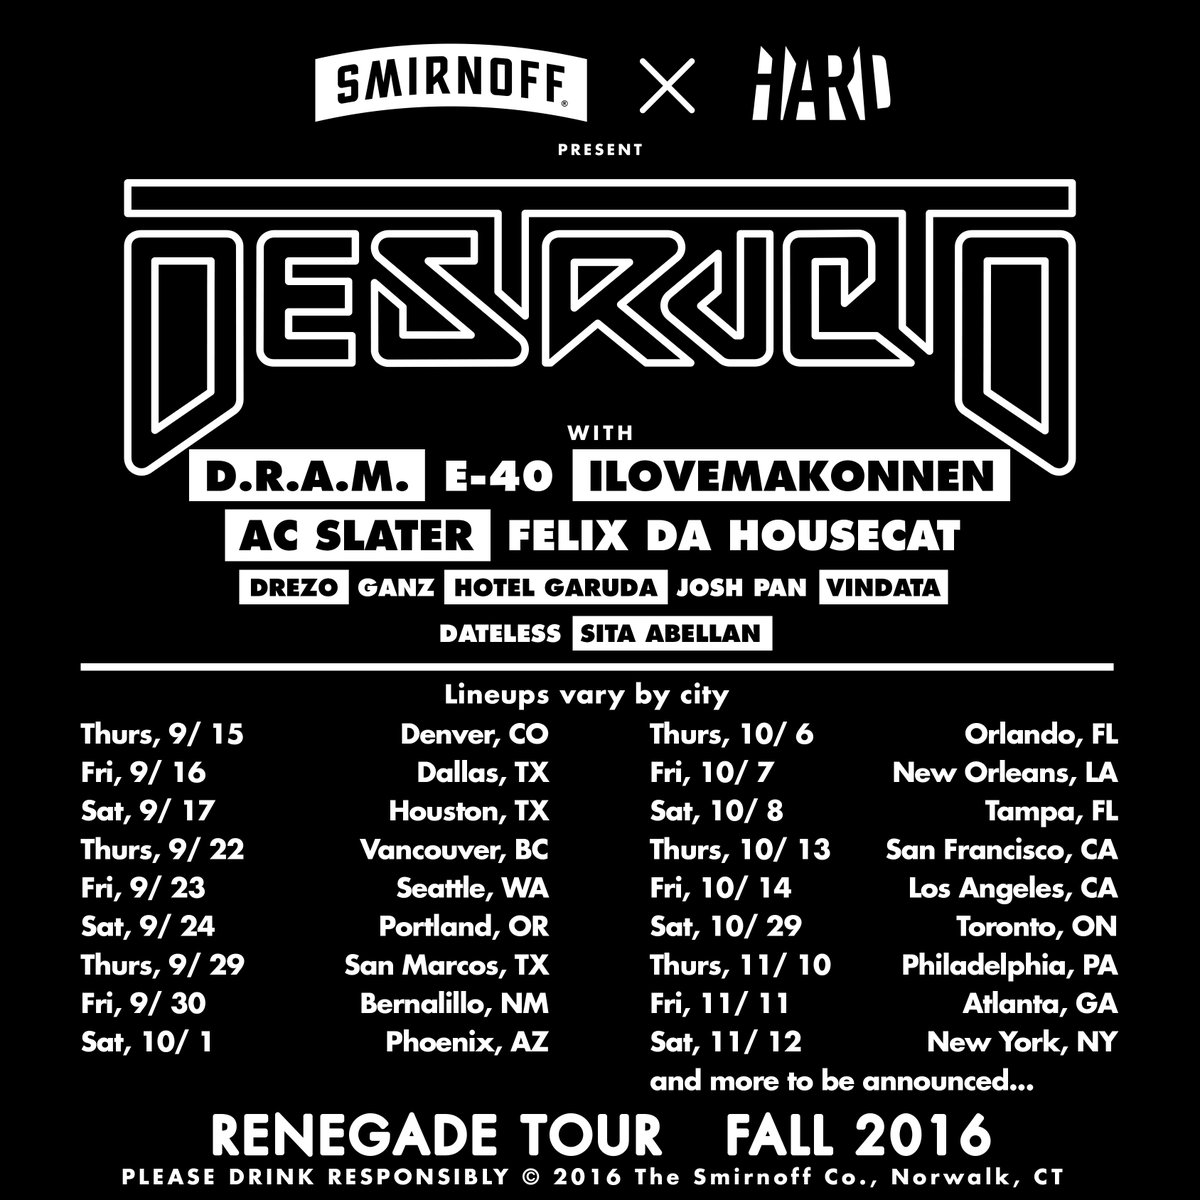 The future is now. #RenegadeTour2016 Bringing out the whole squad on this one.   TICKETS ON SALE TOMORROW https://t.co/tGVvcV6fap